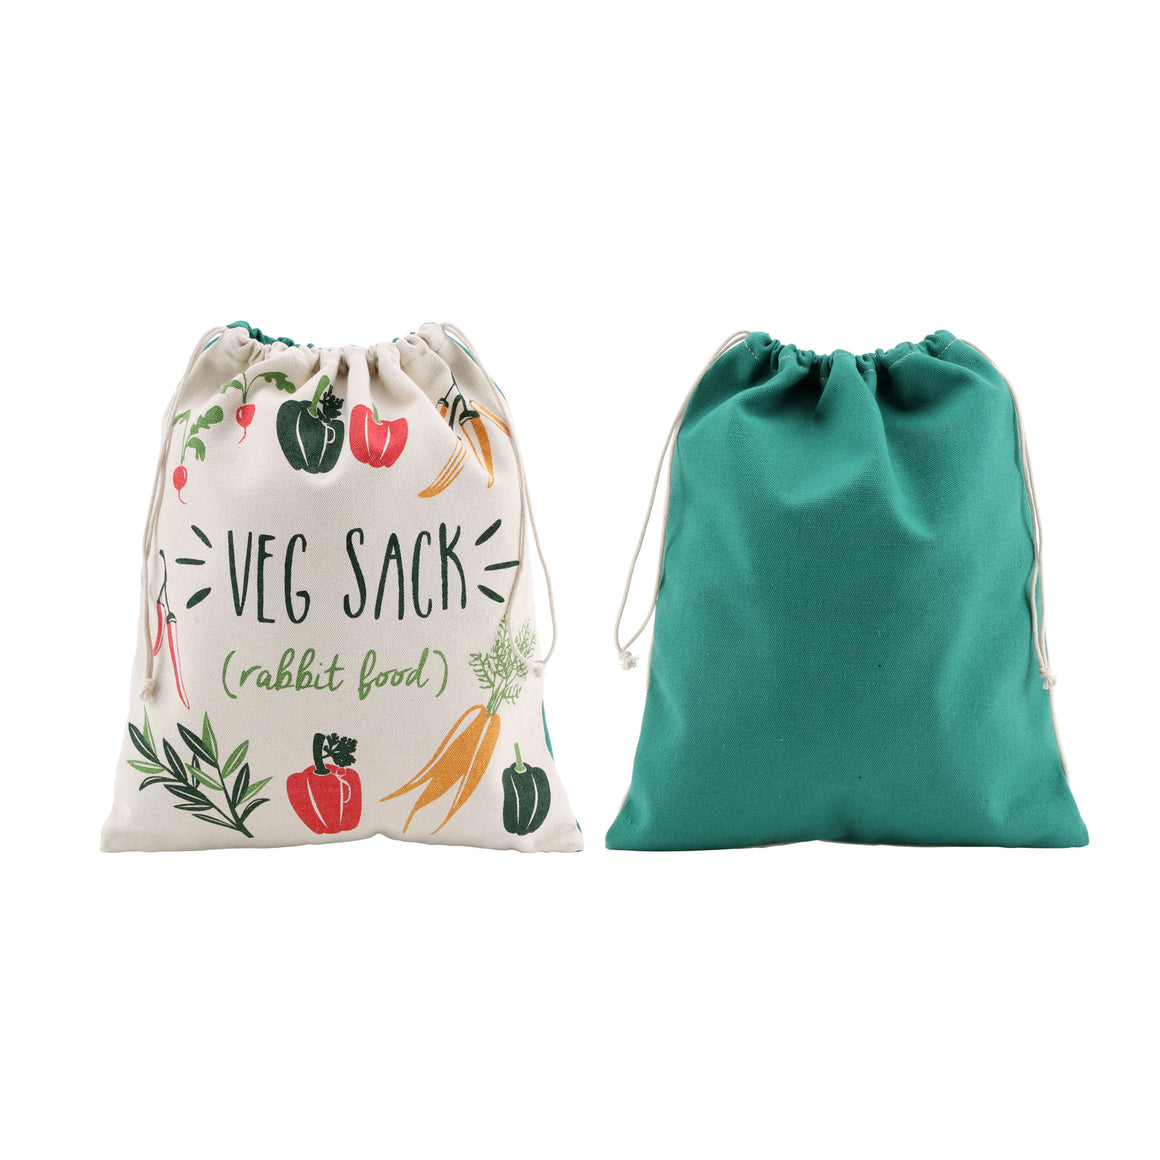 Vegetable Patch 'Veg Sack' Bag - The Love Trees